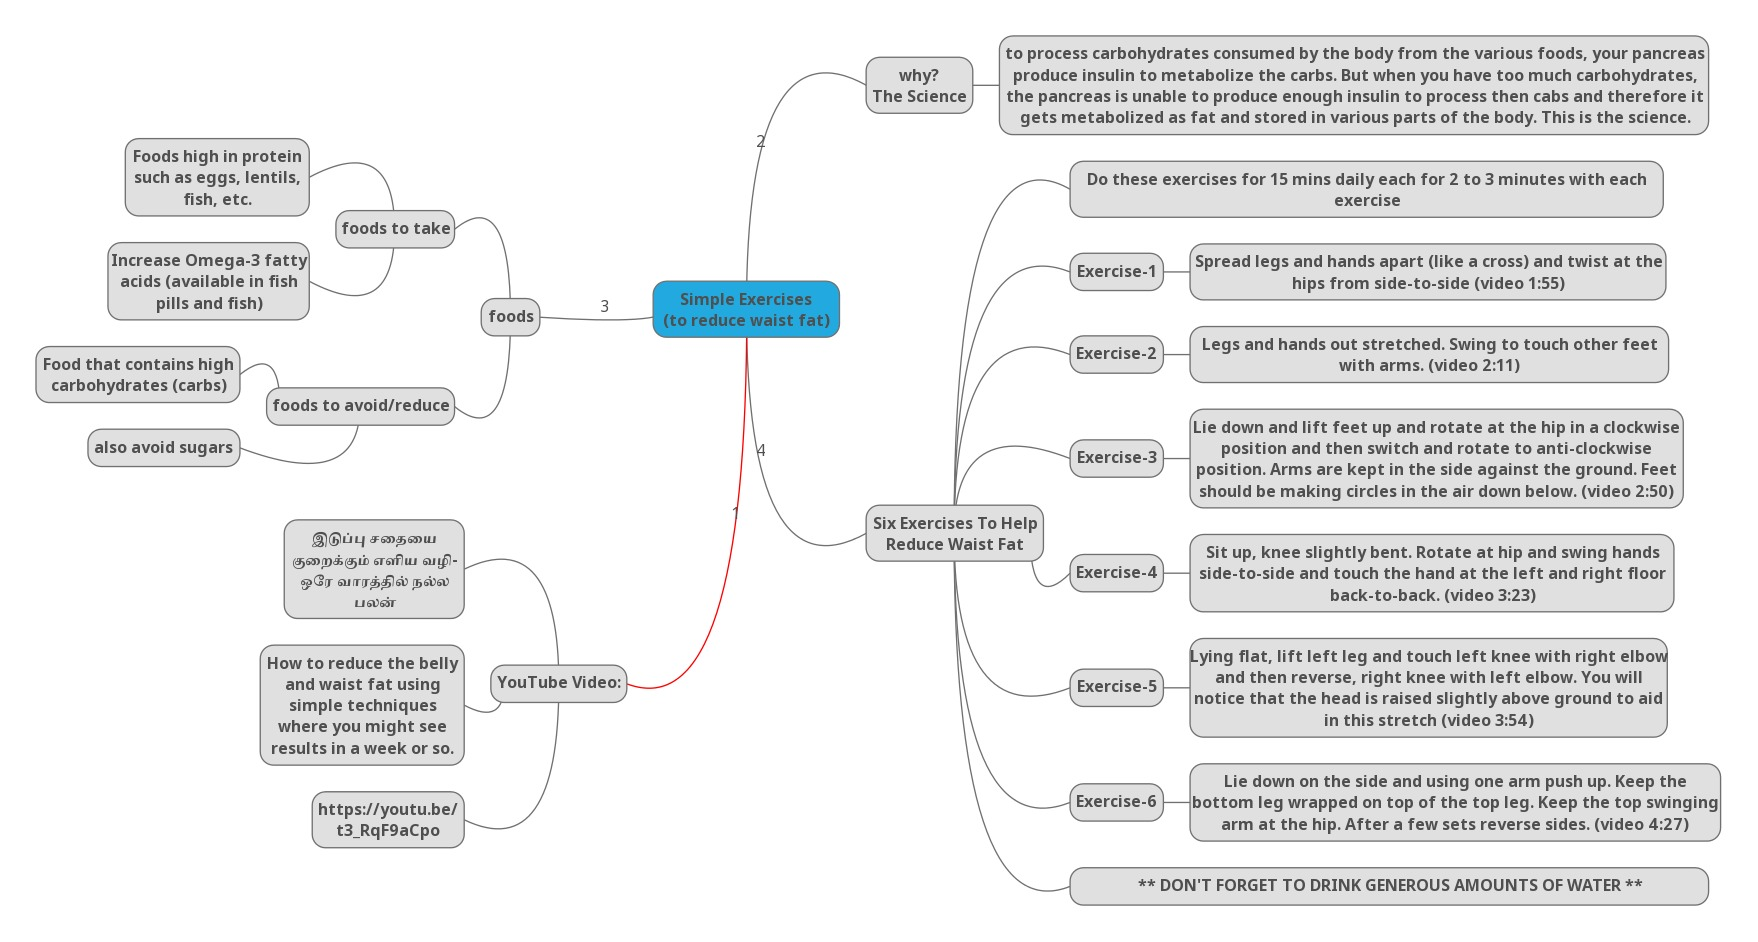 Mind-Map for YouTube Video in Tamil Language for Reducing